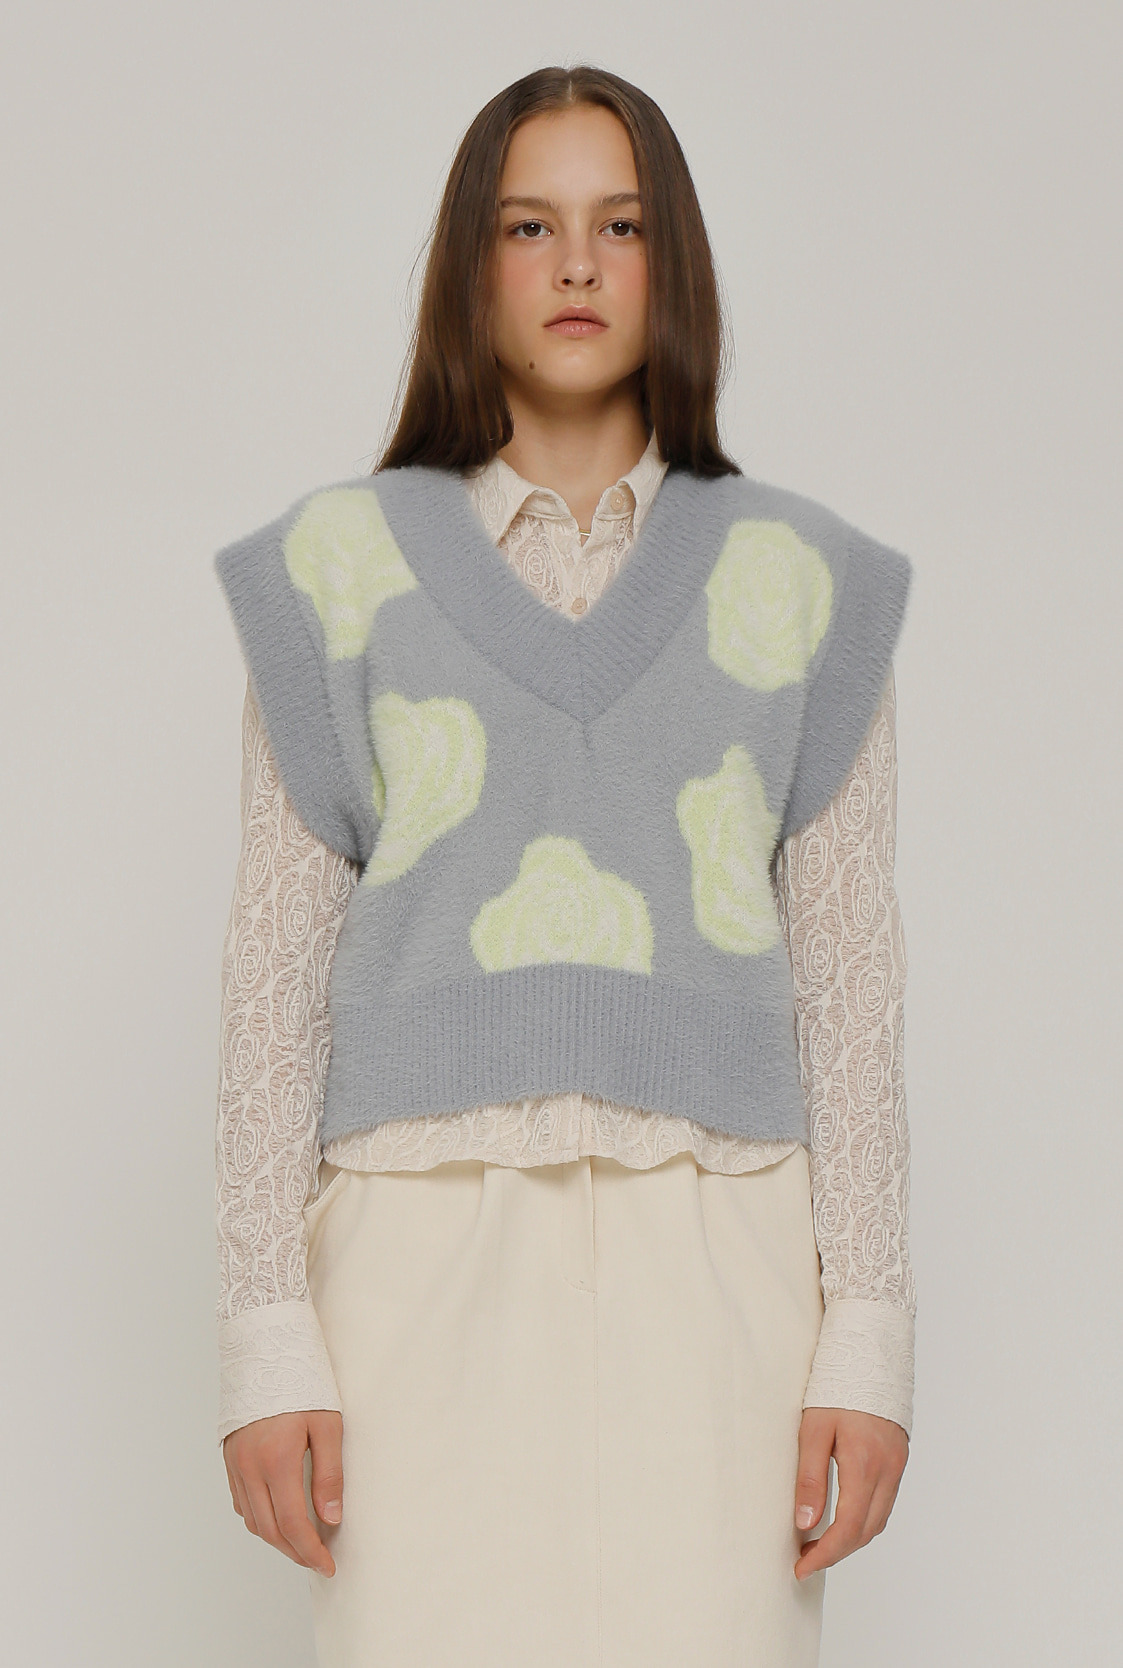 [10/30순차배송]R FLOWER JACQUARD KNIT VEST_GREY